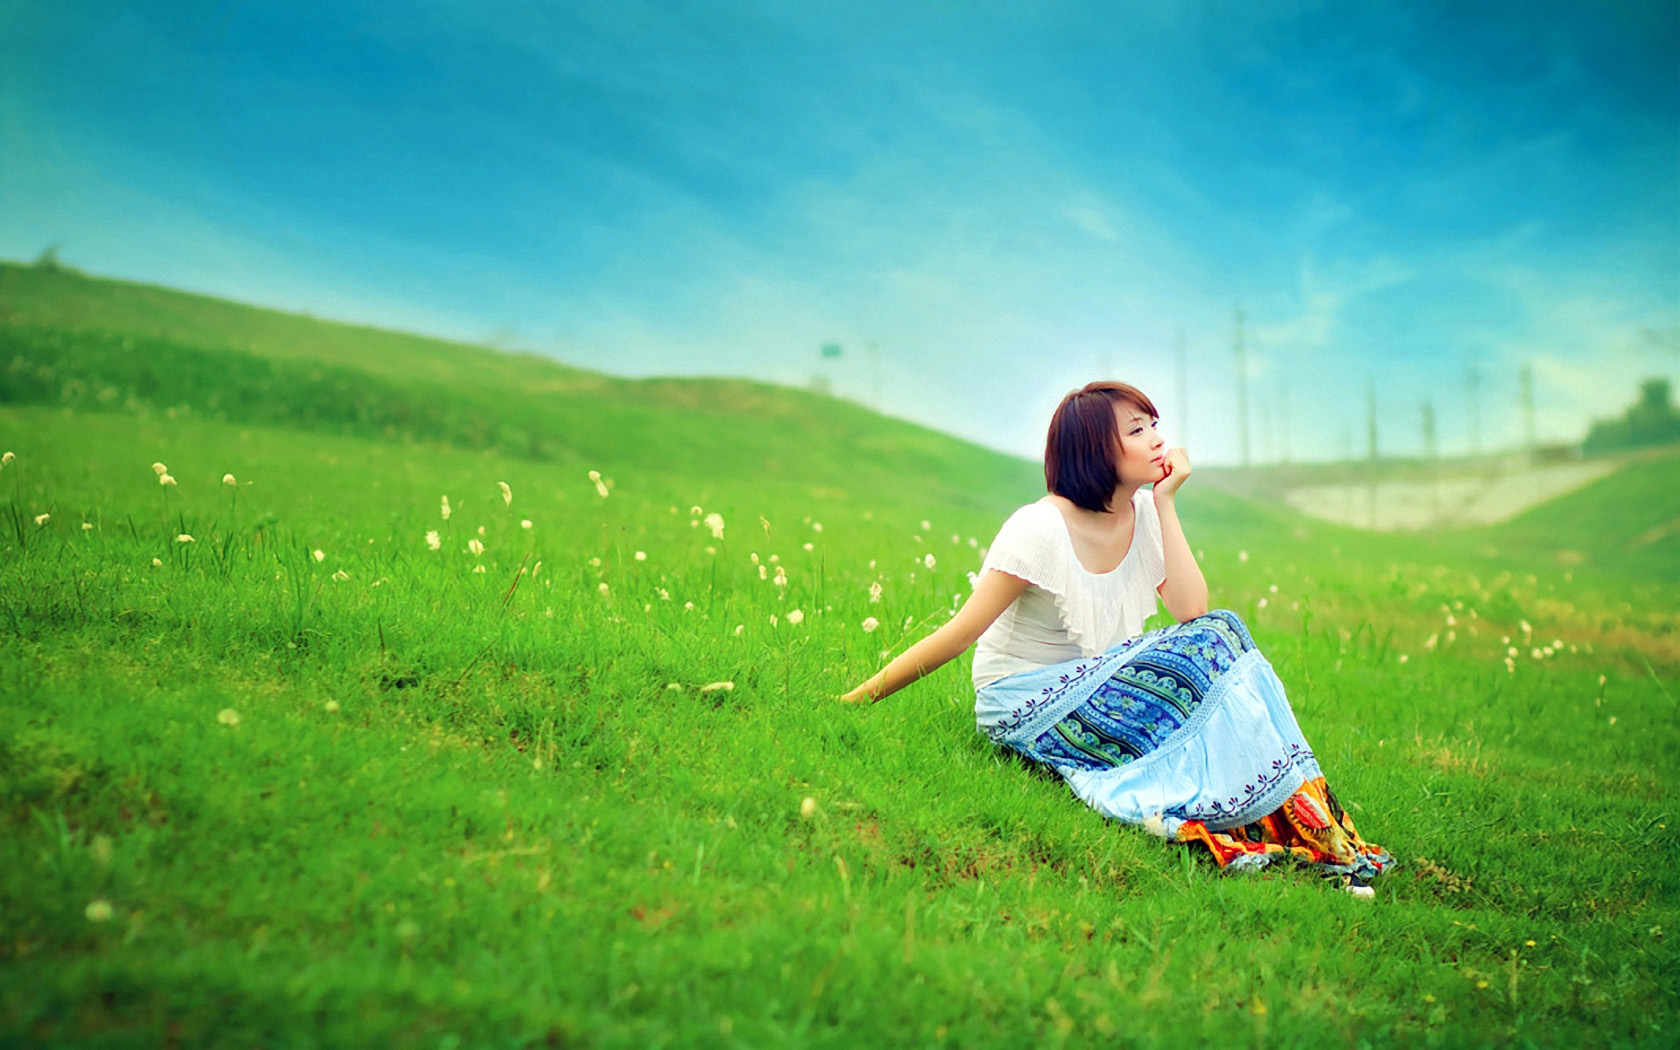 humans and the natural environment The natural environment encompasses all living and non-living things occurring  naturally,  such as urban settings and agricultural land conversion, the natural  environment is greatly modified into a simplified human environment even acts.